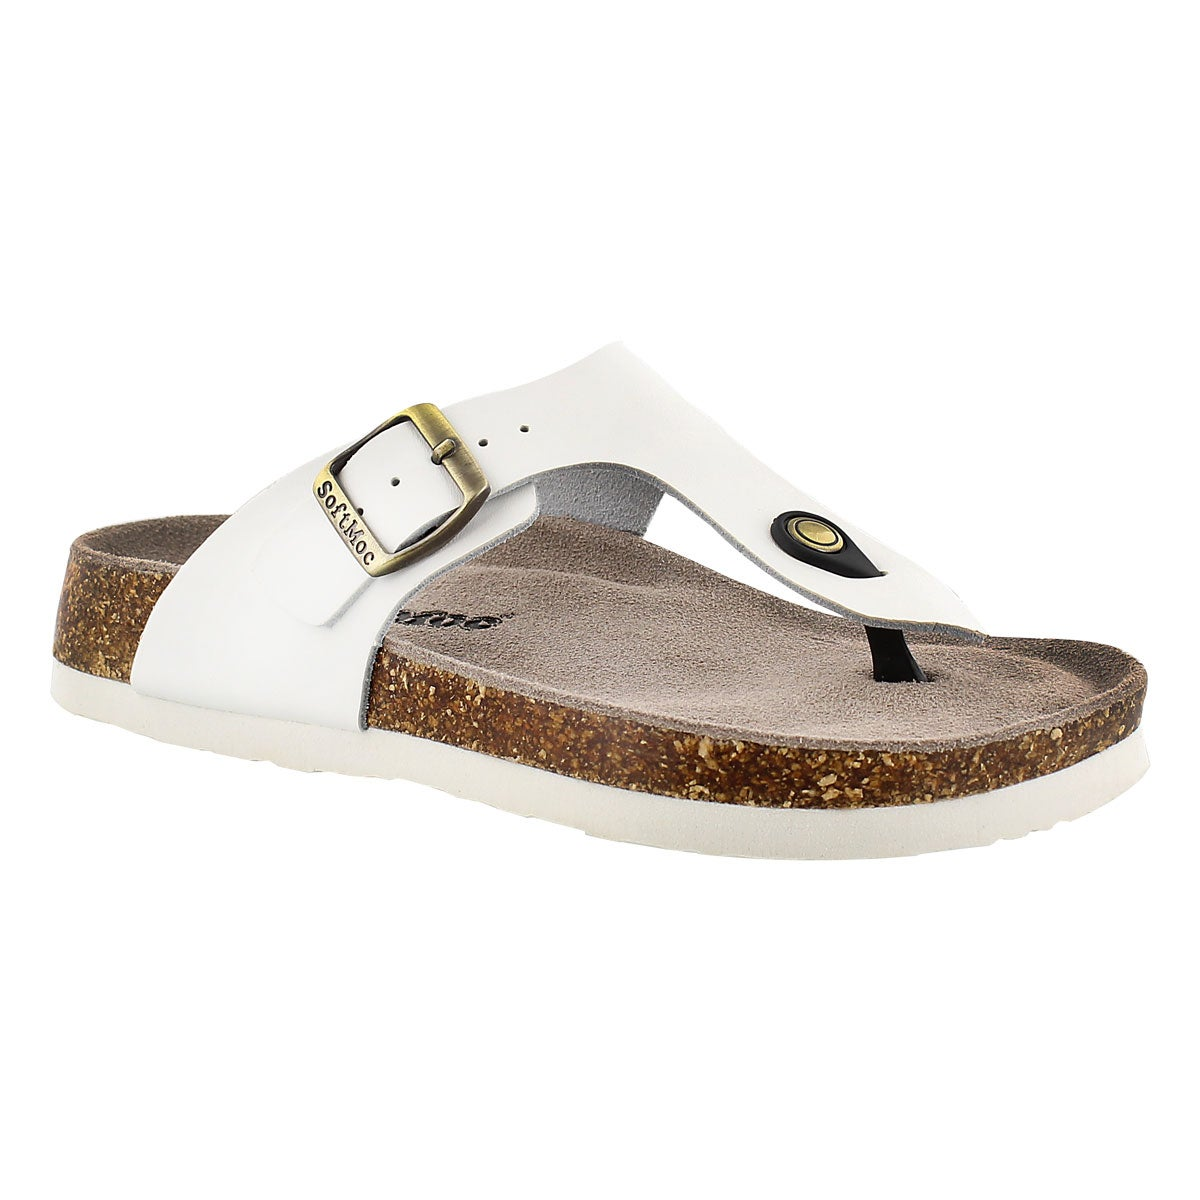 Lds Angy 4 wht memory foam thong sandal